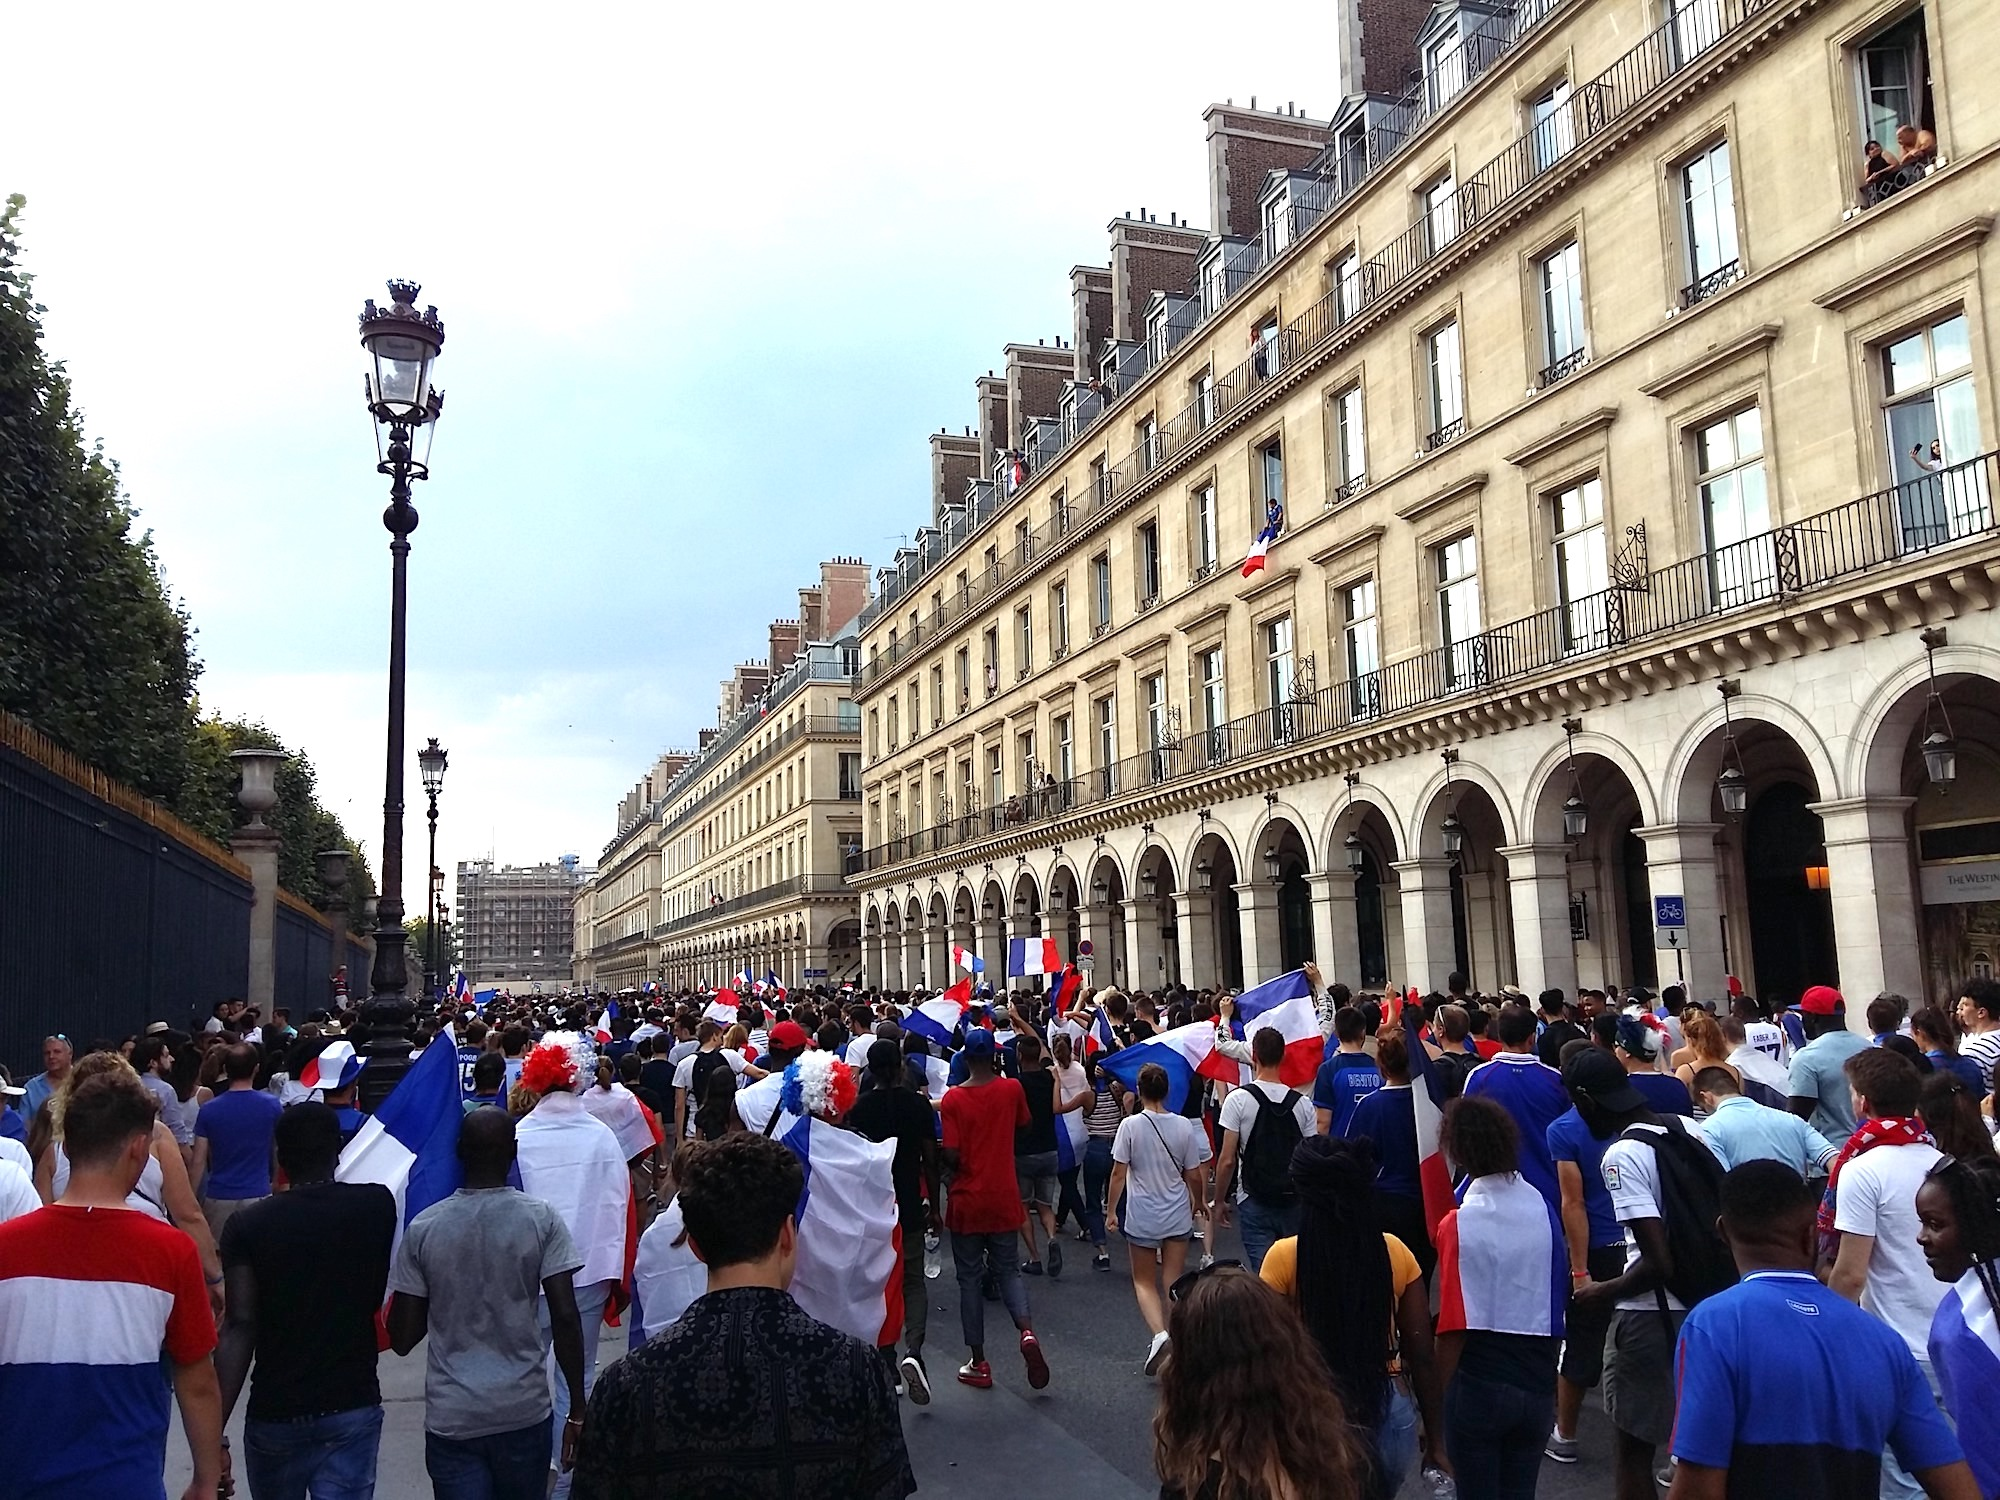 Crowds of people celebrating wrapped in French flags on the Rue de Rivoli when France won the football world cup 2018.